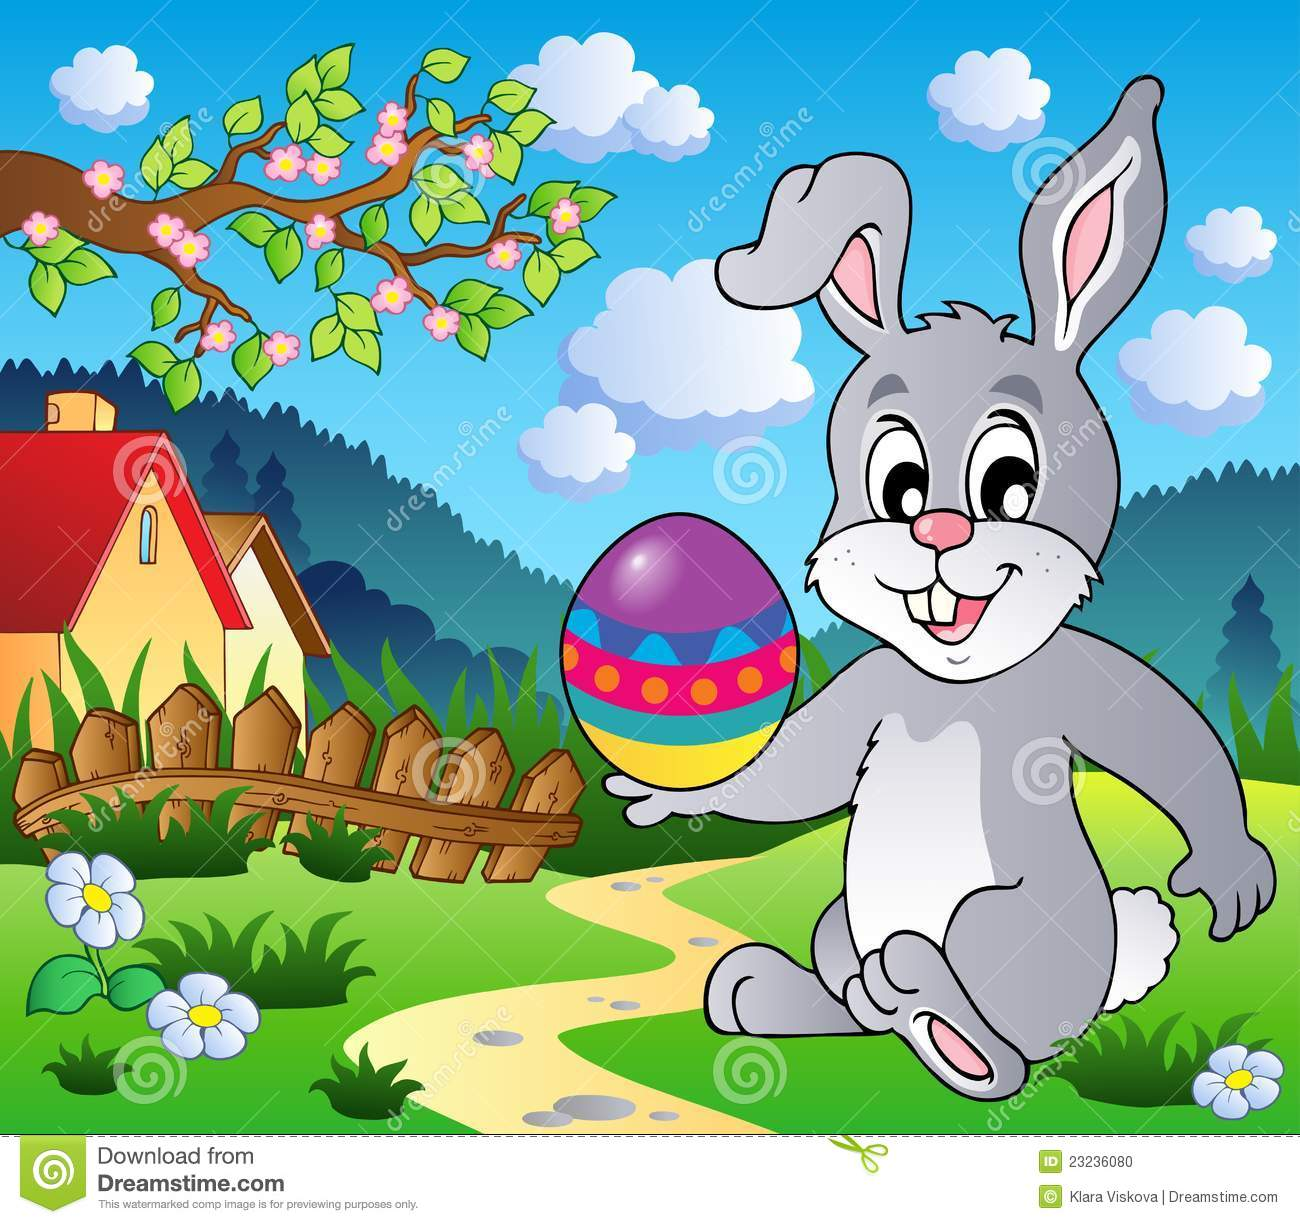 Easter Bunny Theme Image 4 Stock Vector. Image Of